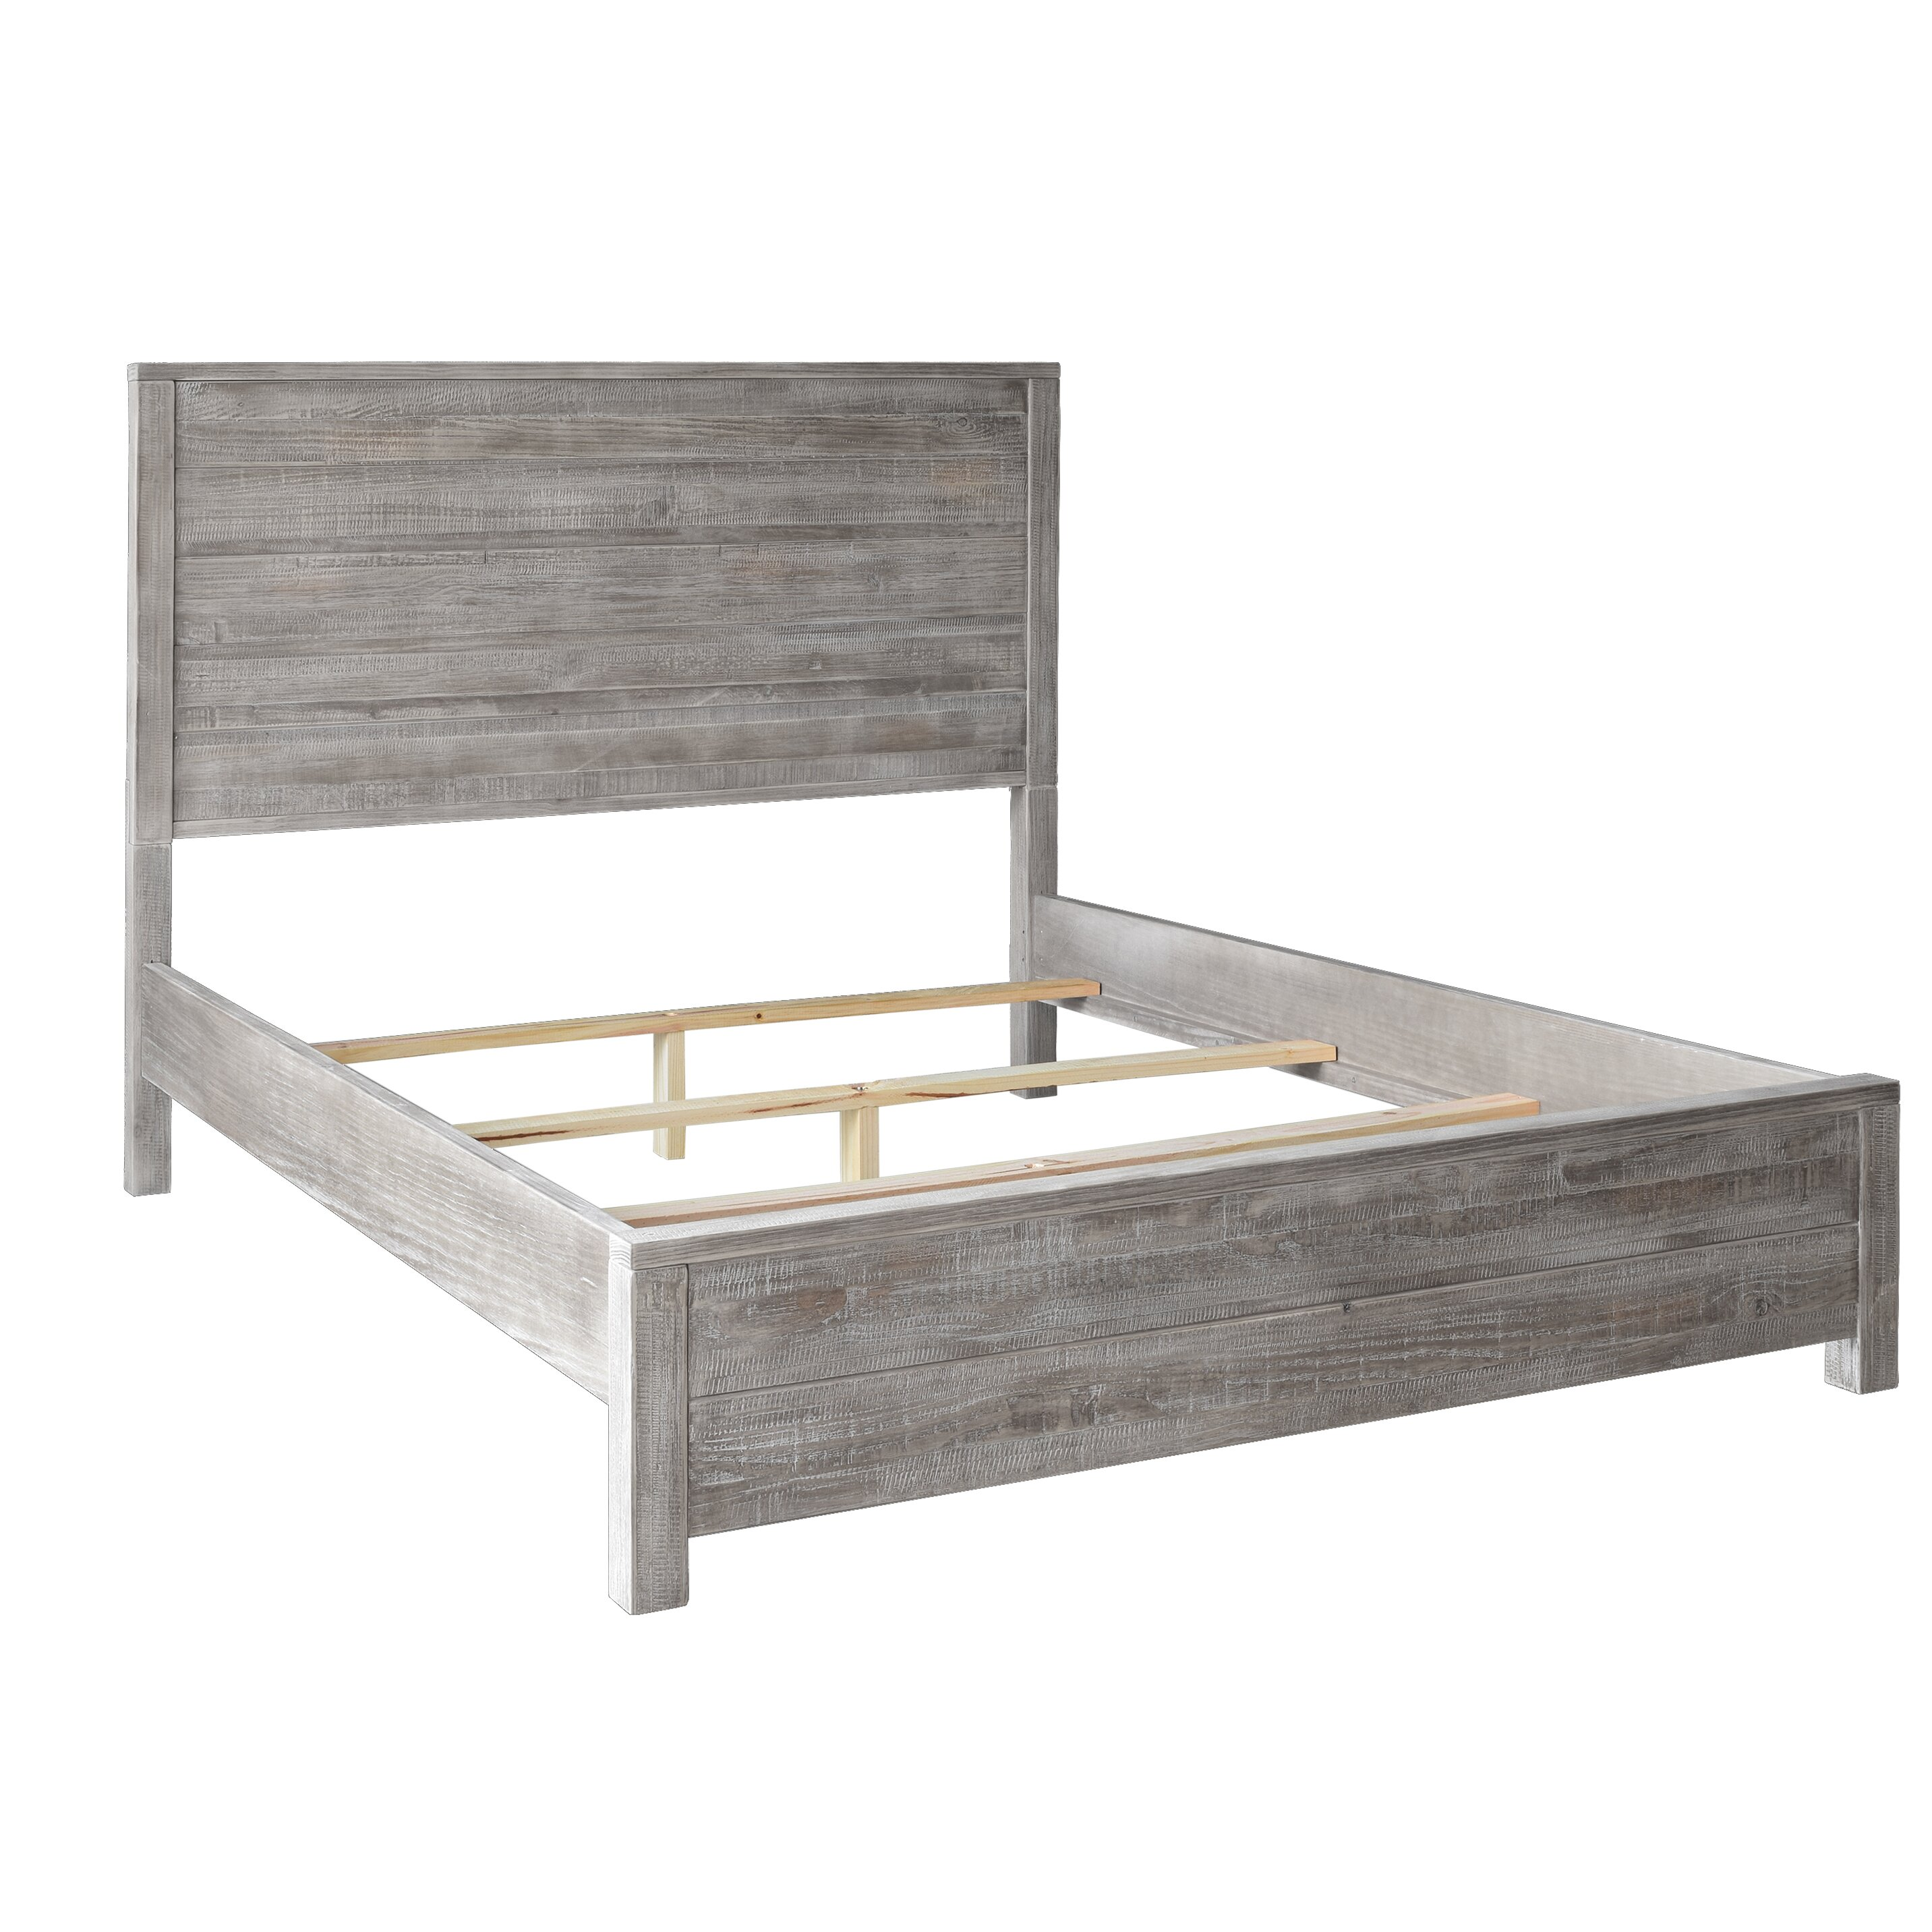 Mckenzie Bedroom Furniture Grain Wood Furniture Montauk Platform Bed Reviews Wayfair